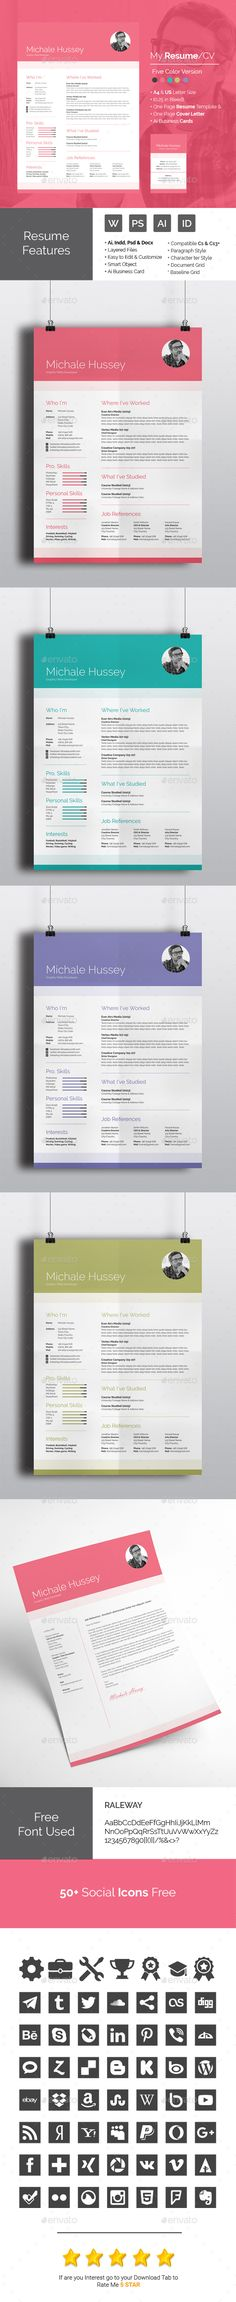 Great resume layout that is well formatted and clean Foru2026 #resume - styles of resumes